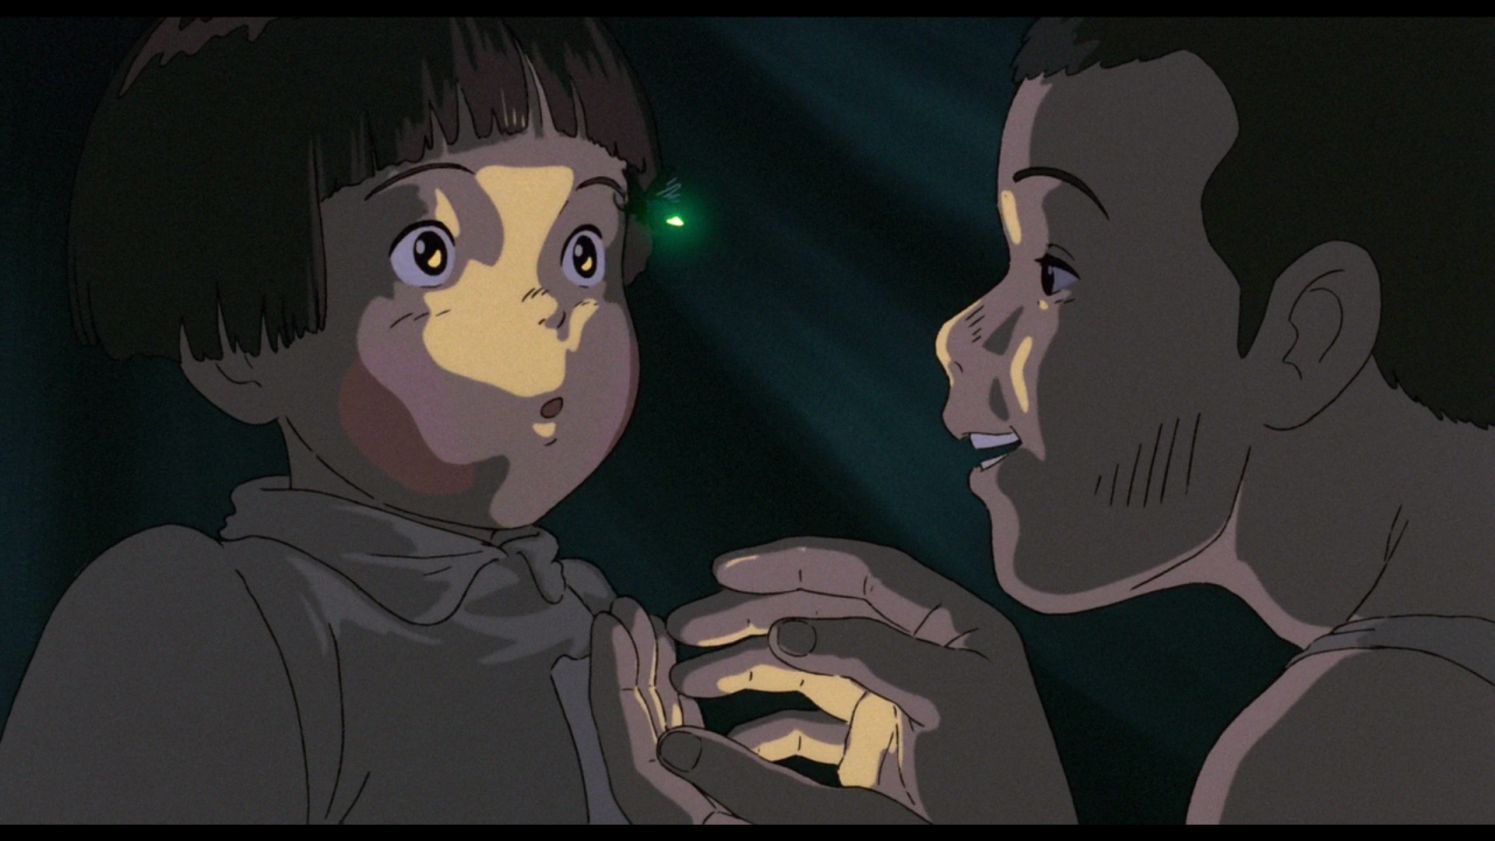 grave of the fireflies review The two children set up housekeeping in a cave by a stream, but their meager resources are quickly exhausted, and seita is reduced to stealing to feed his sister \nthe strength of grave of the fireflies lies in takahata's evenhanded portrayal of the characters.